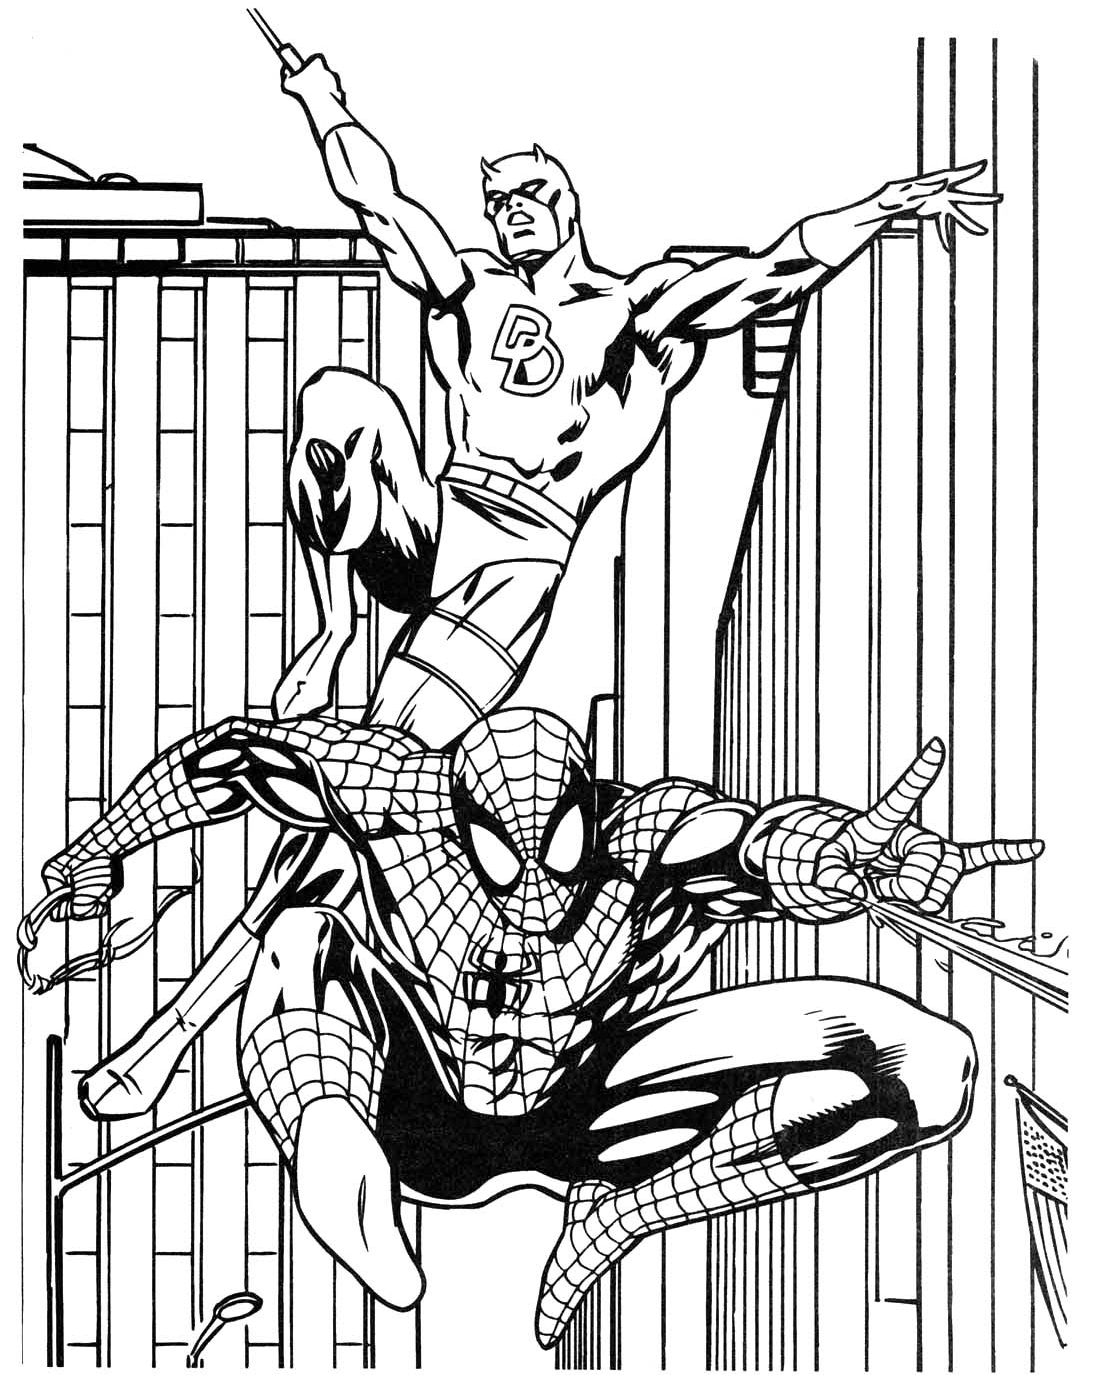 Pin By Pskpedia Com On Spiderman Coloring Pages Superhero Coloring Pages Spiderman Coloring Marvel Coloring